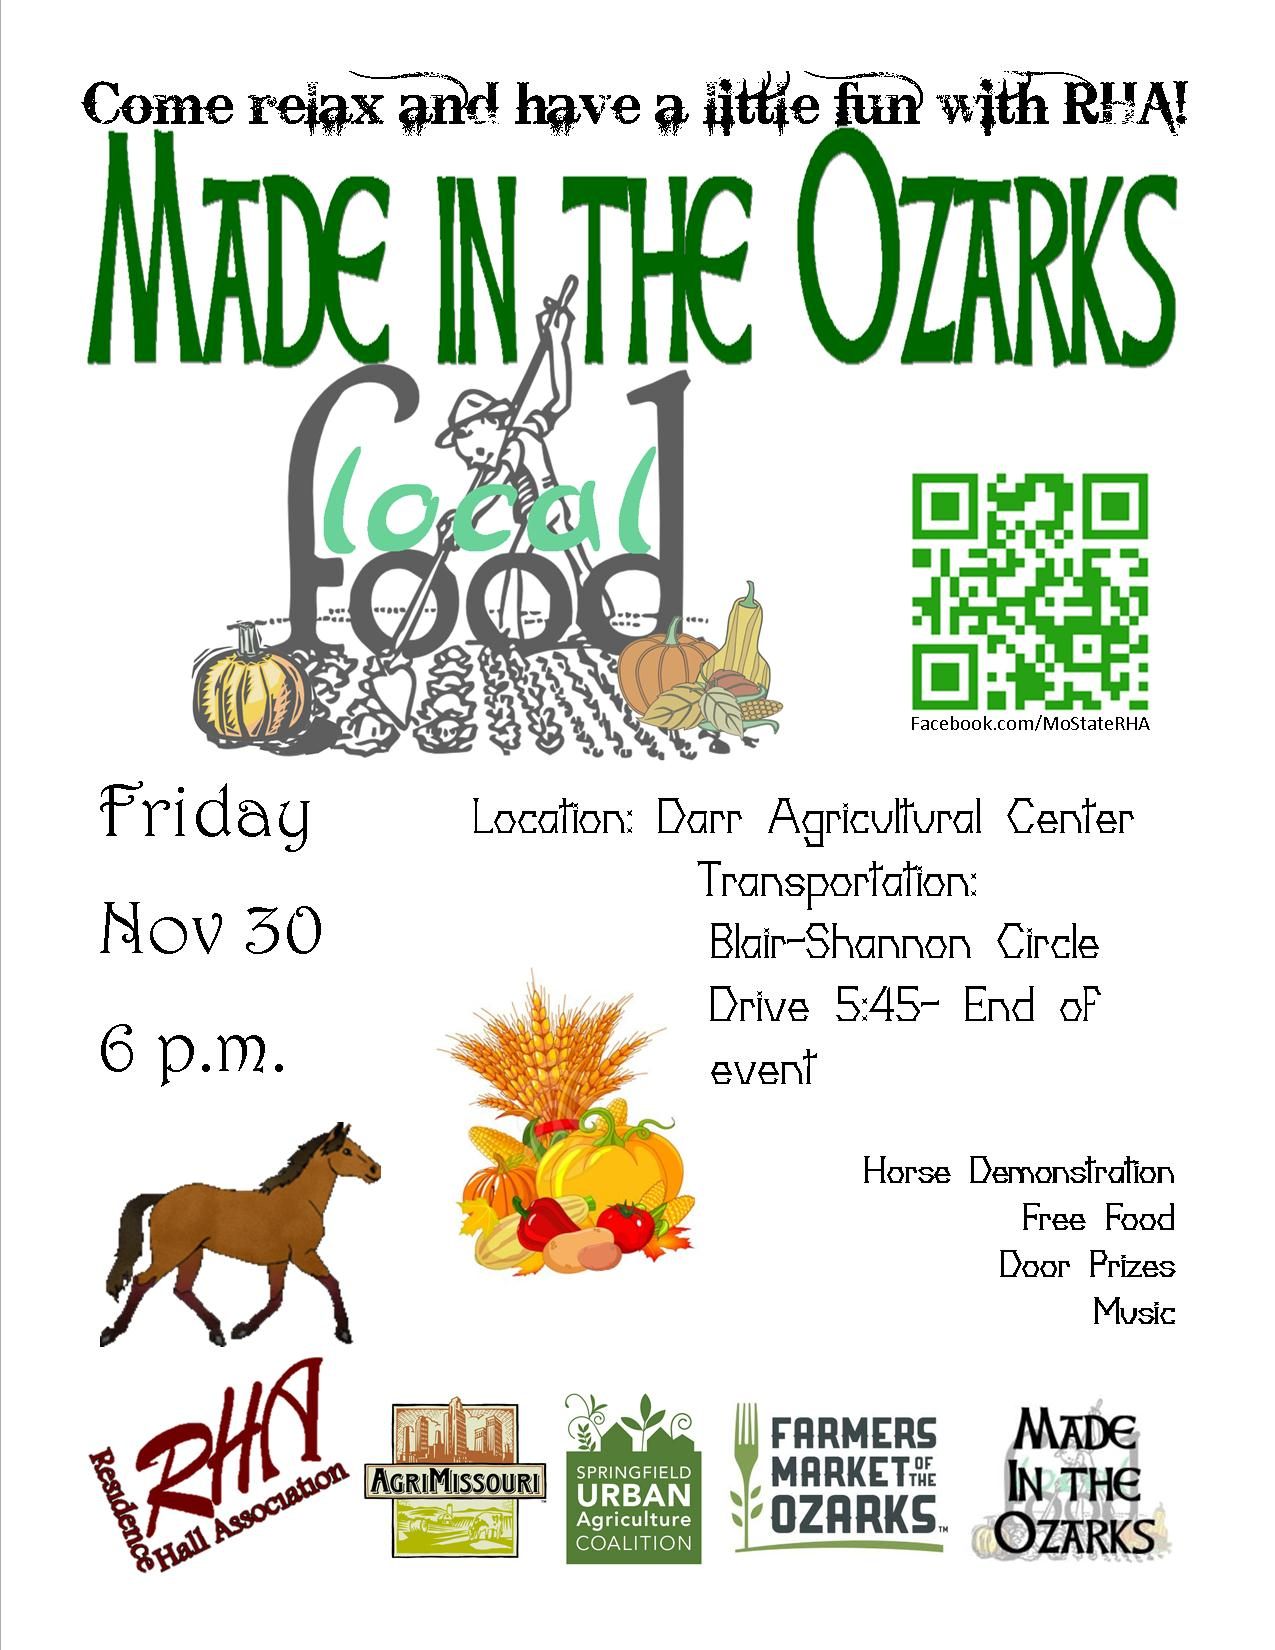 RHA to host Made in the Ozarks at Darr Agricultural Center